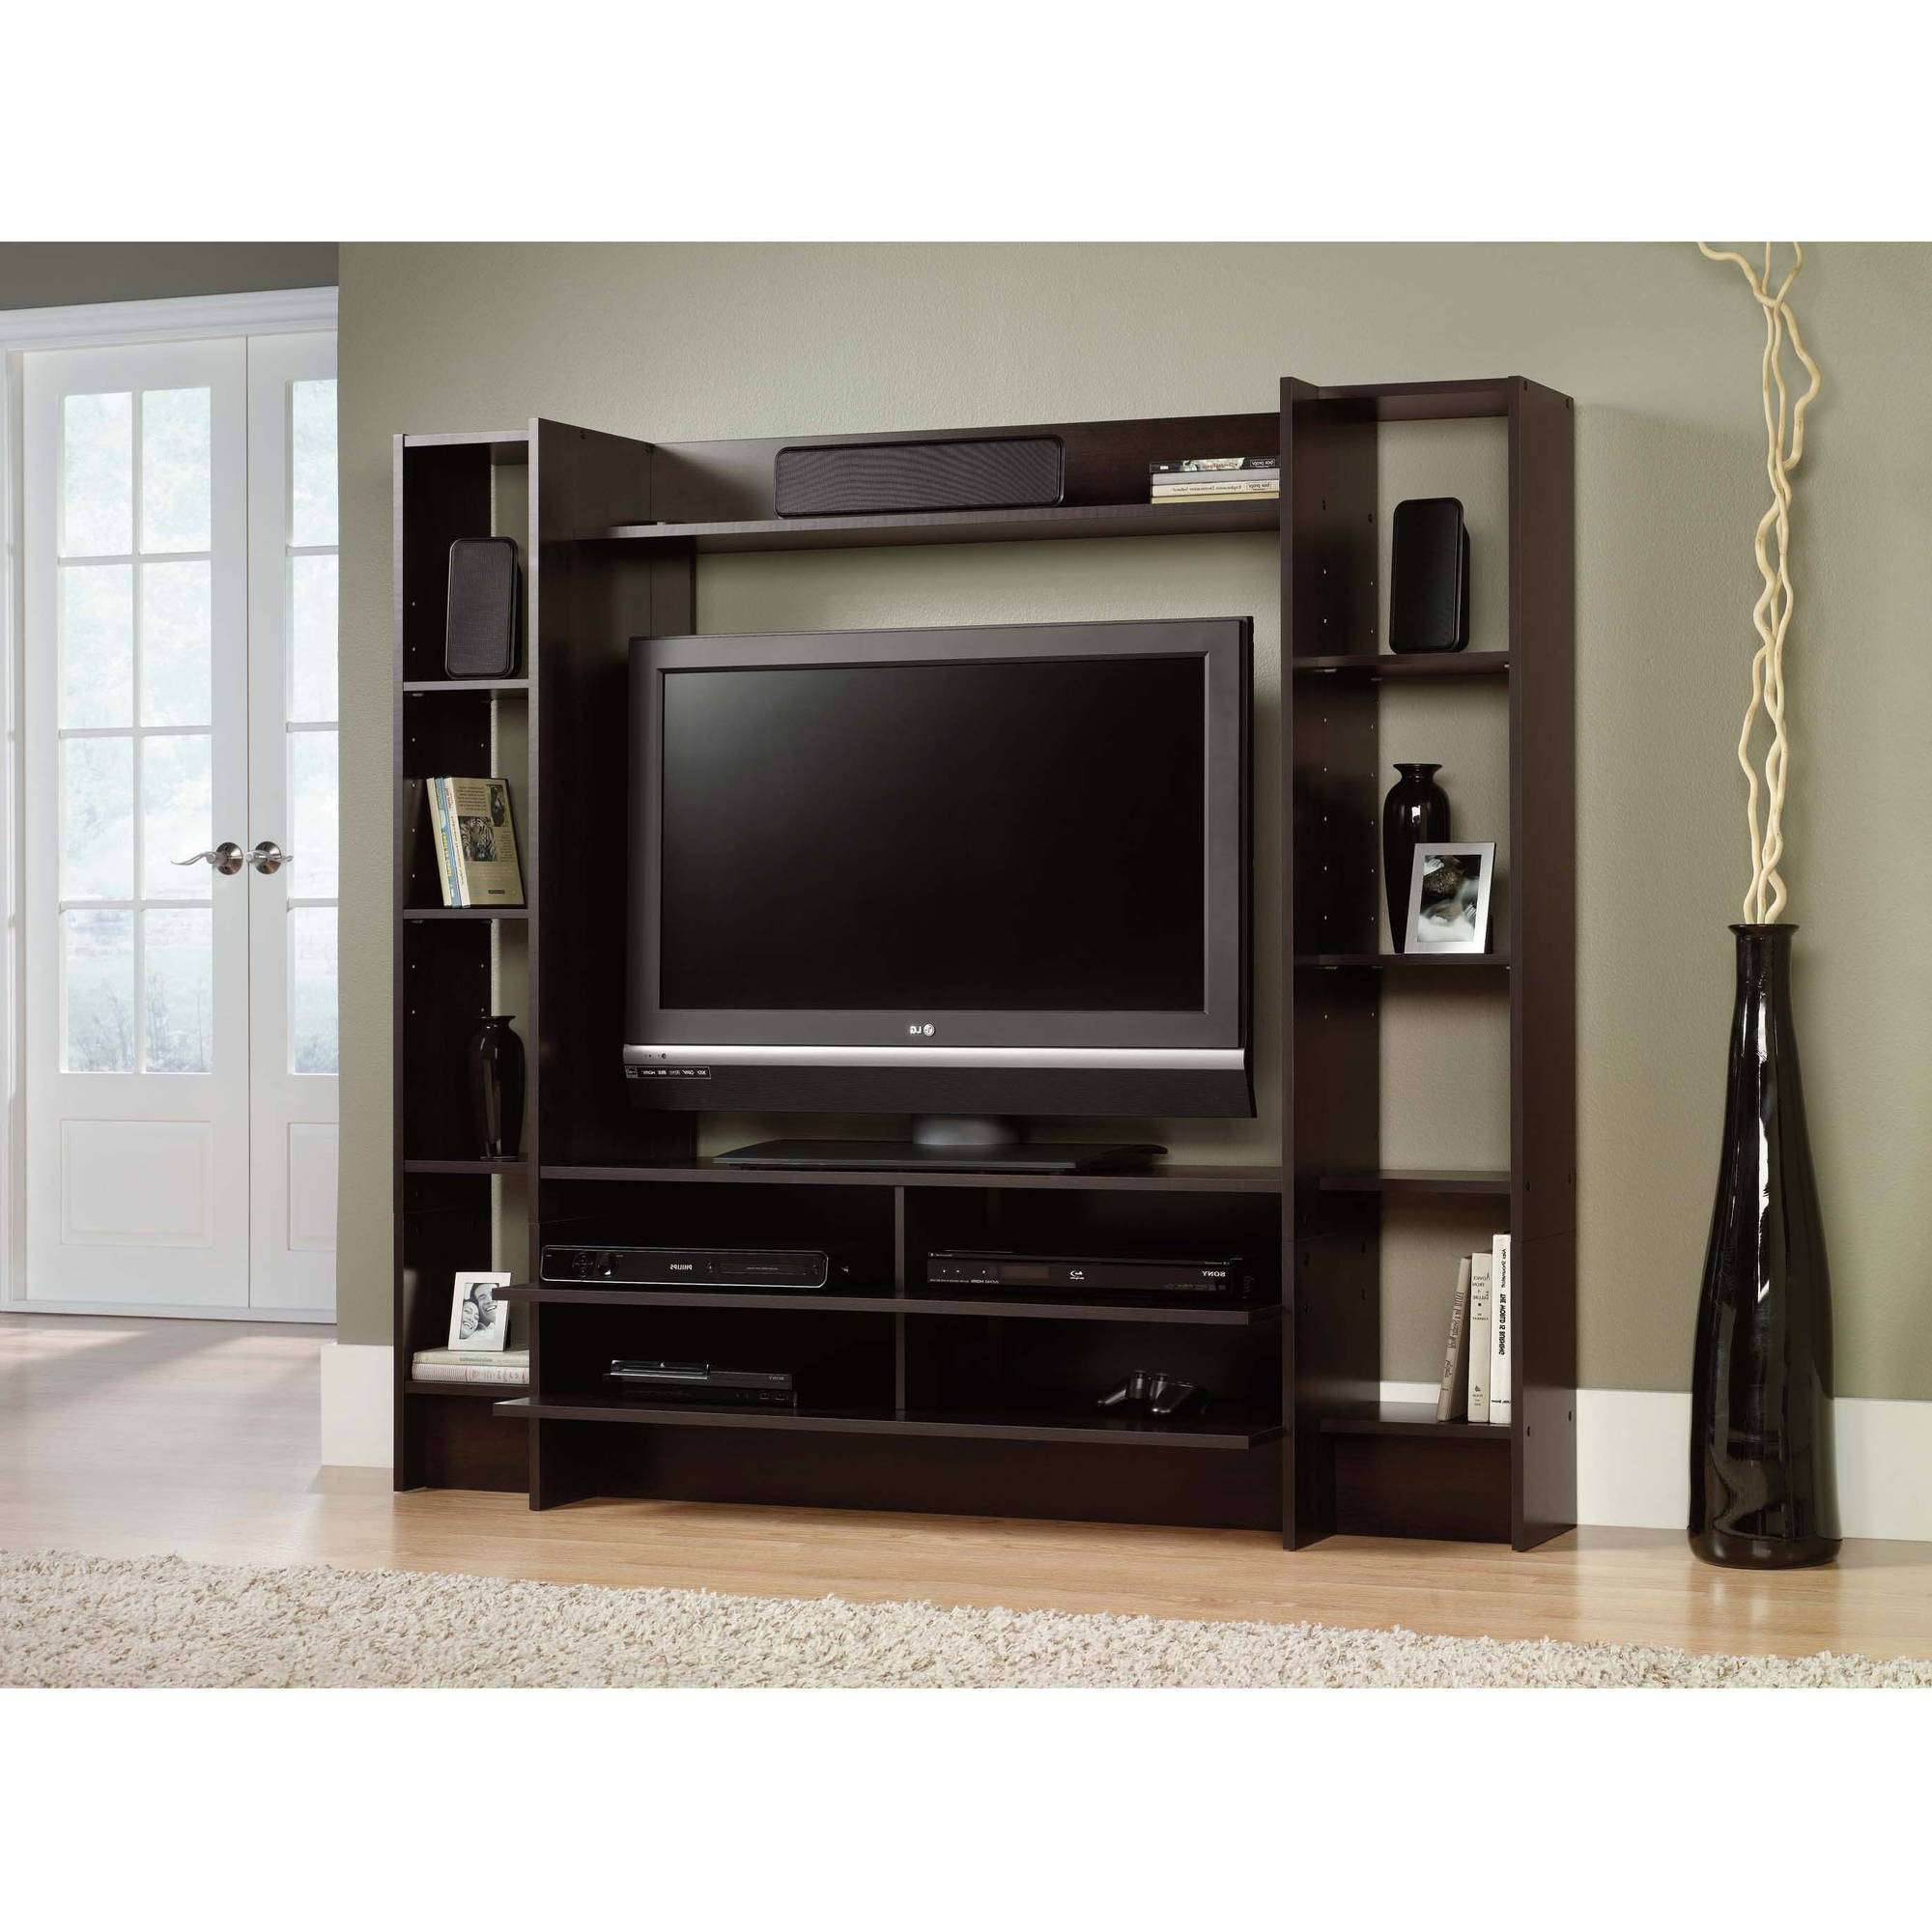 Tv Stands & Entertainment Centers – Walmart With Regard To Cabinet Tv Stands (View 14 of 15)